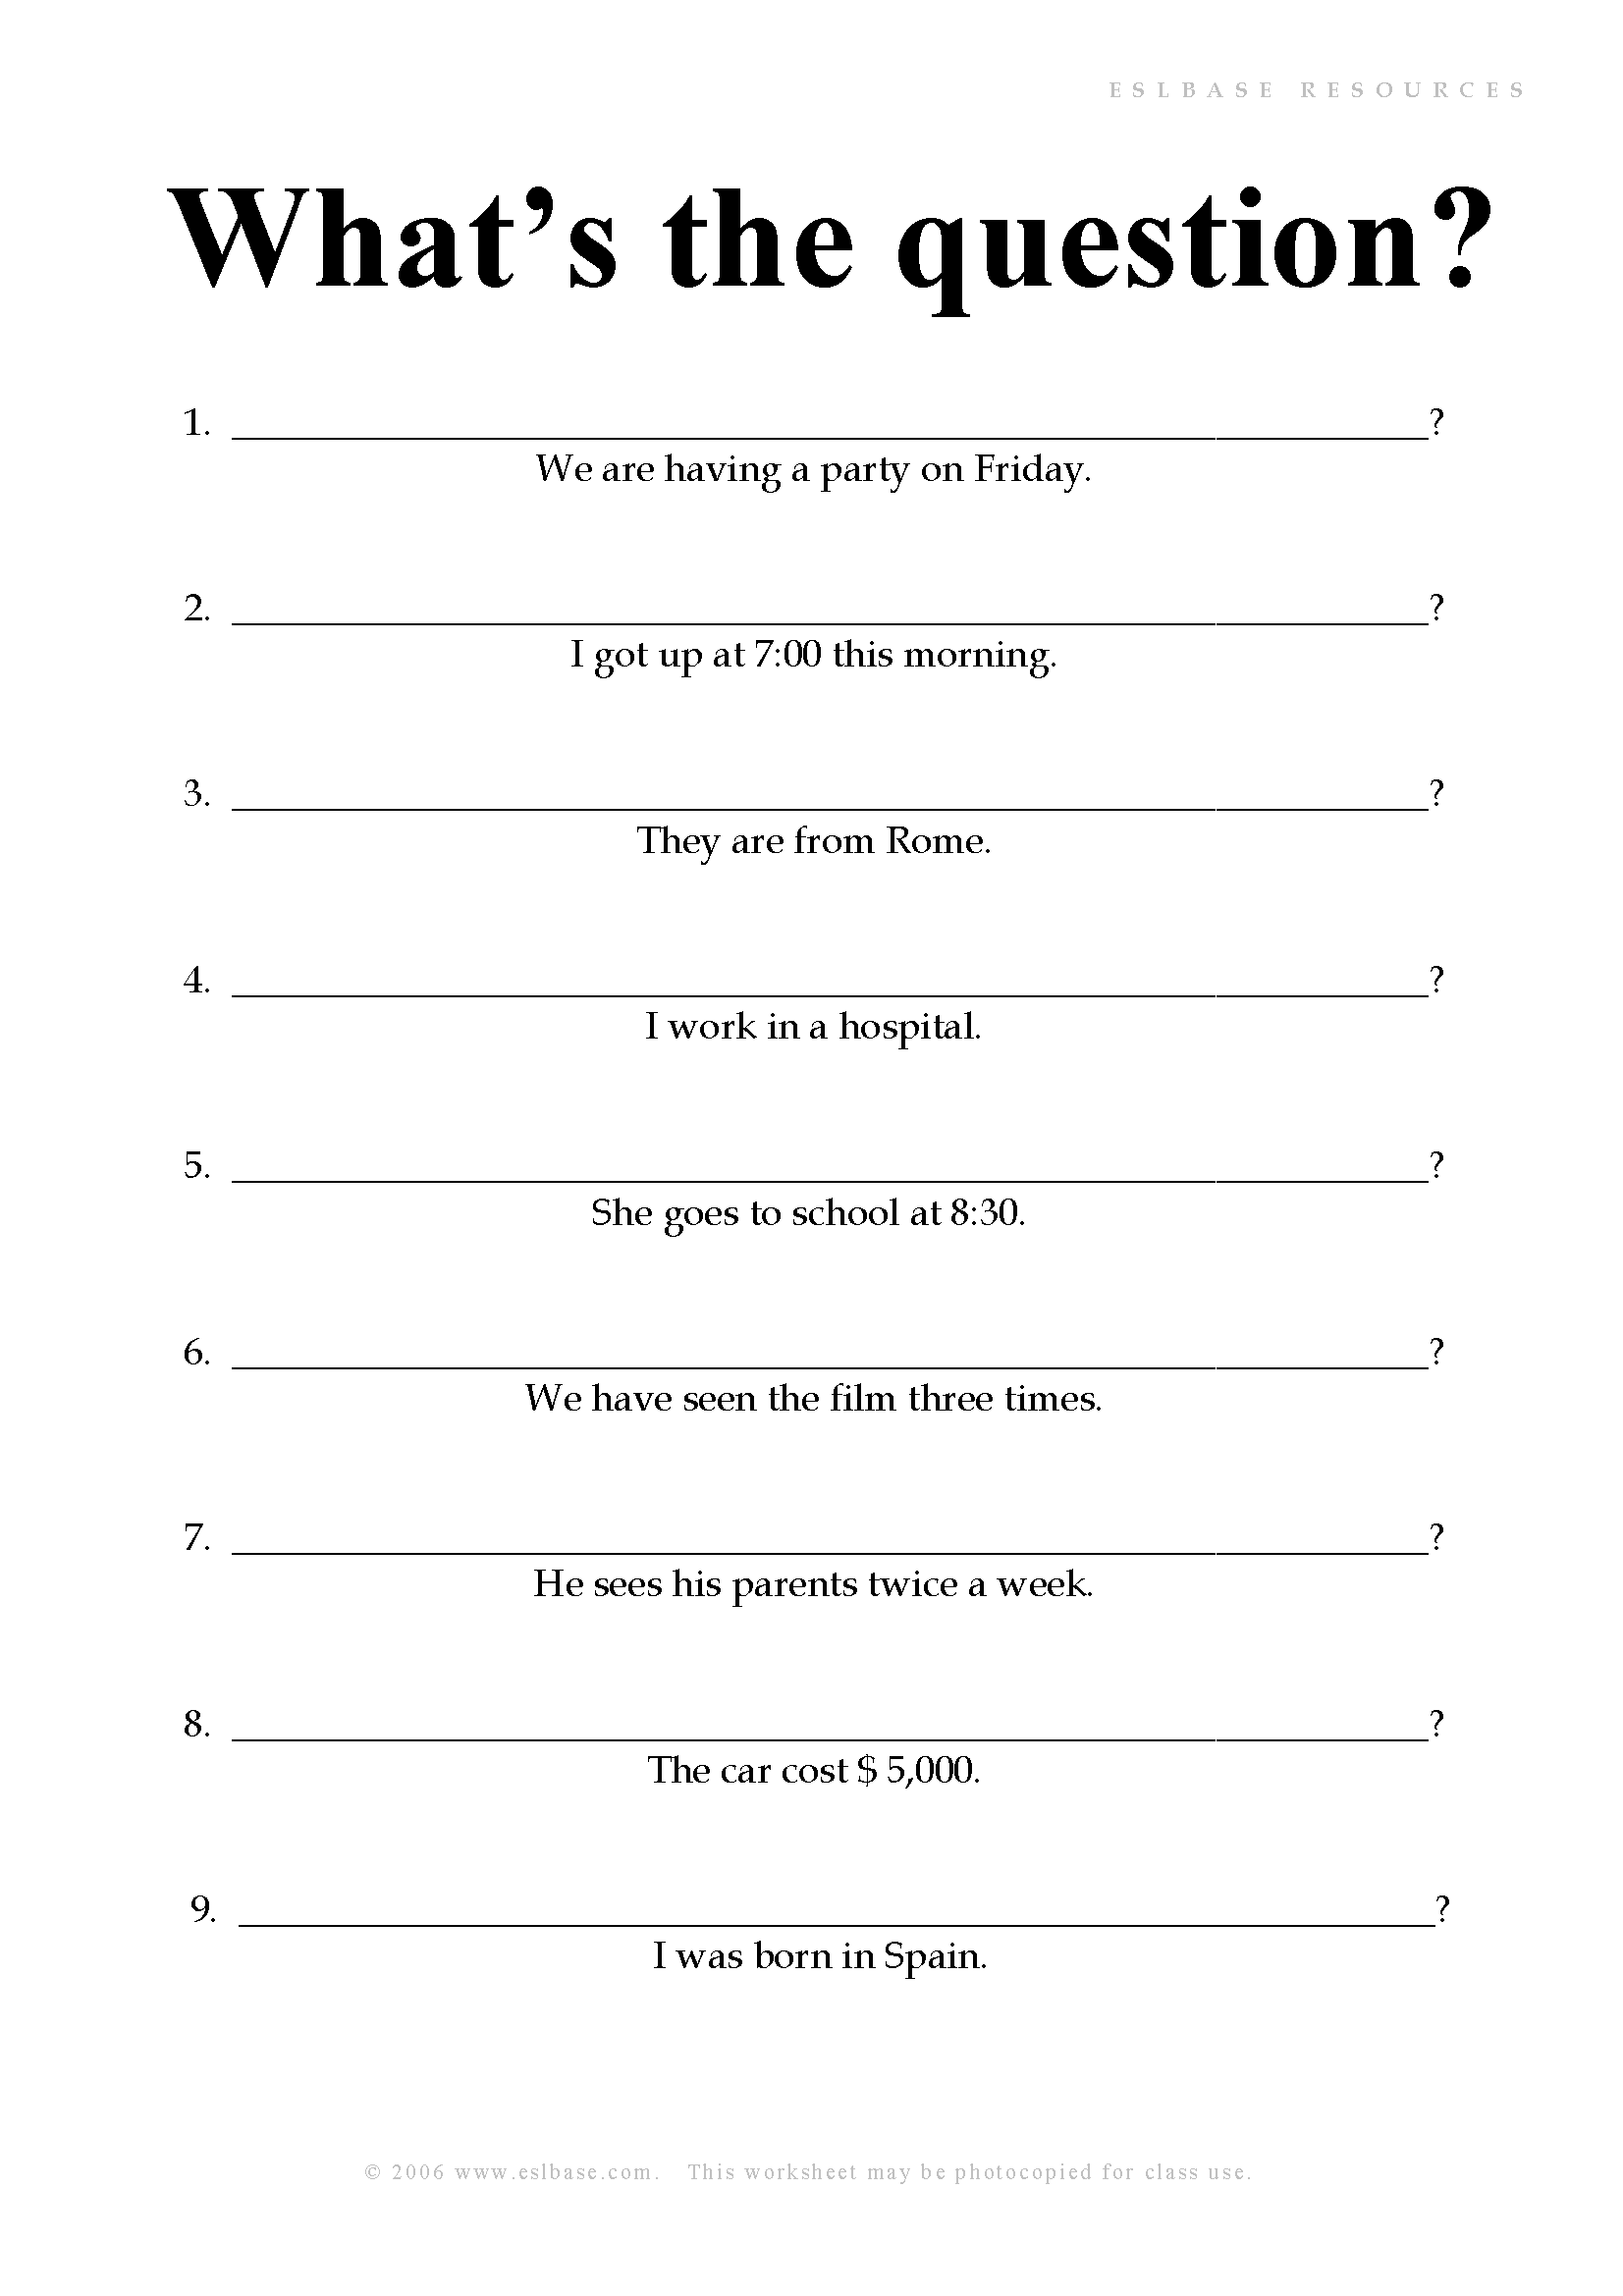 Edmark Reading Program Level 1 Worksheet